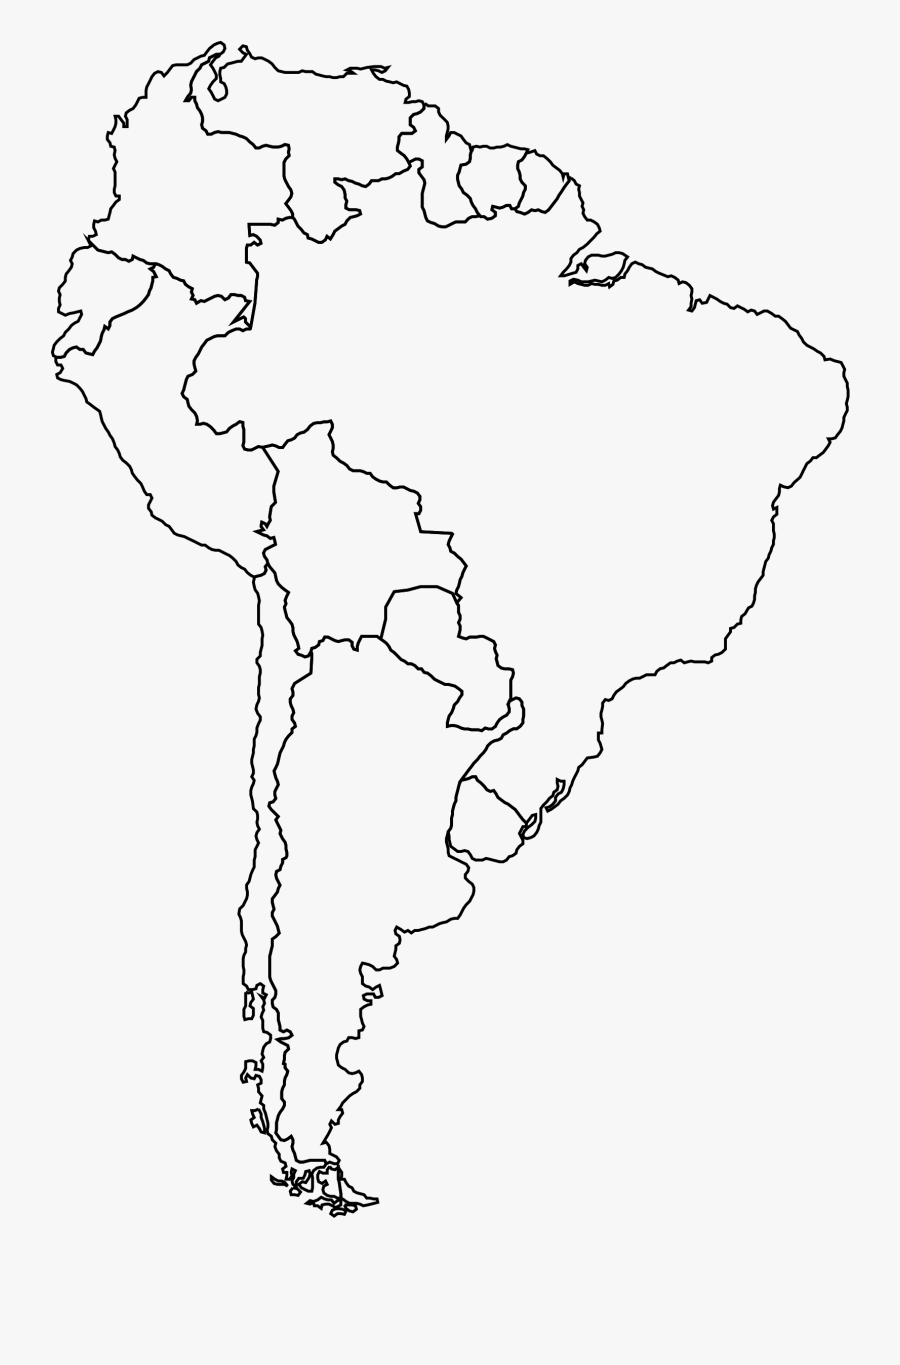 Blank South America Map South America Blank Map , Free Transparent Clipart   ClipartKey